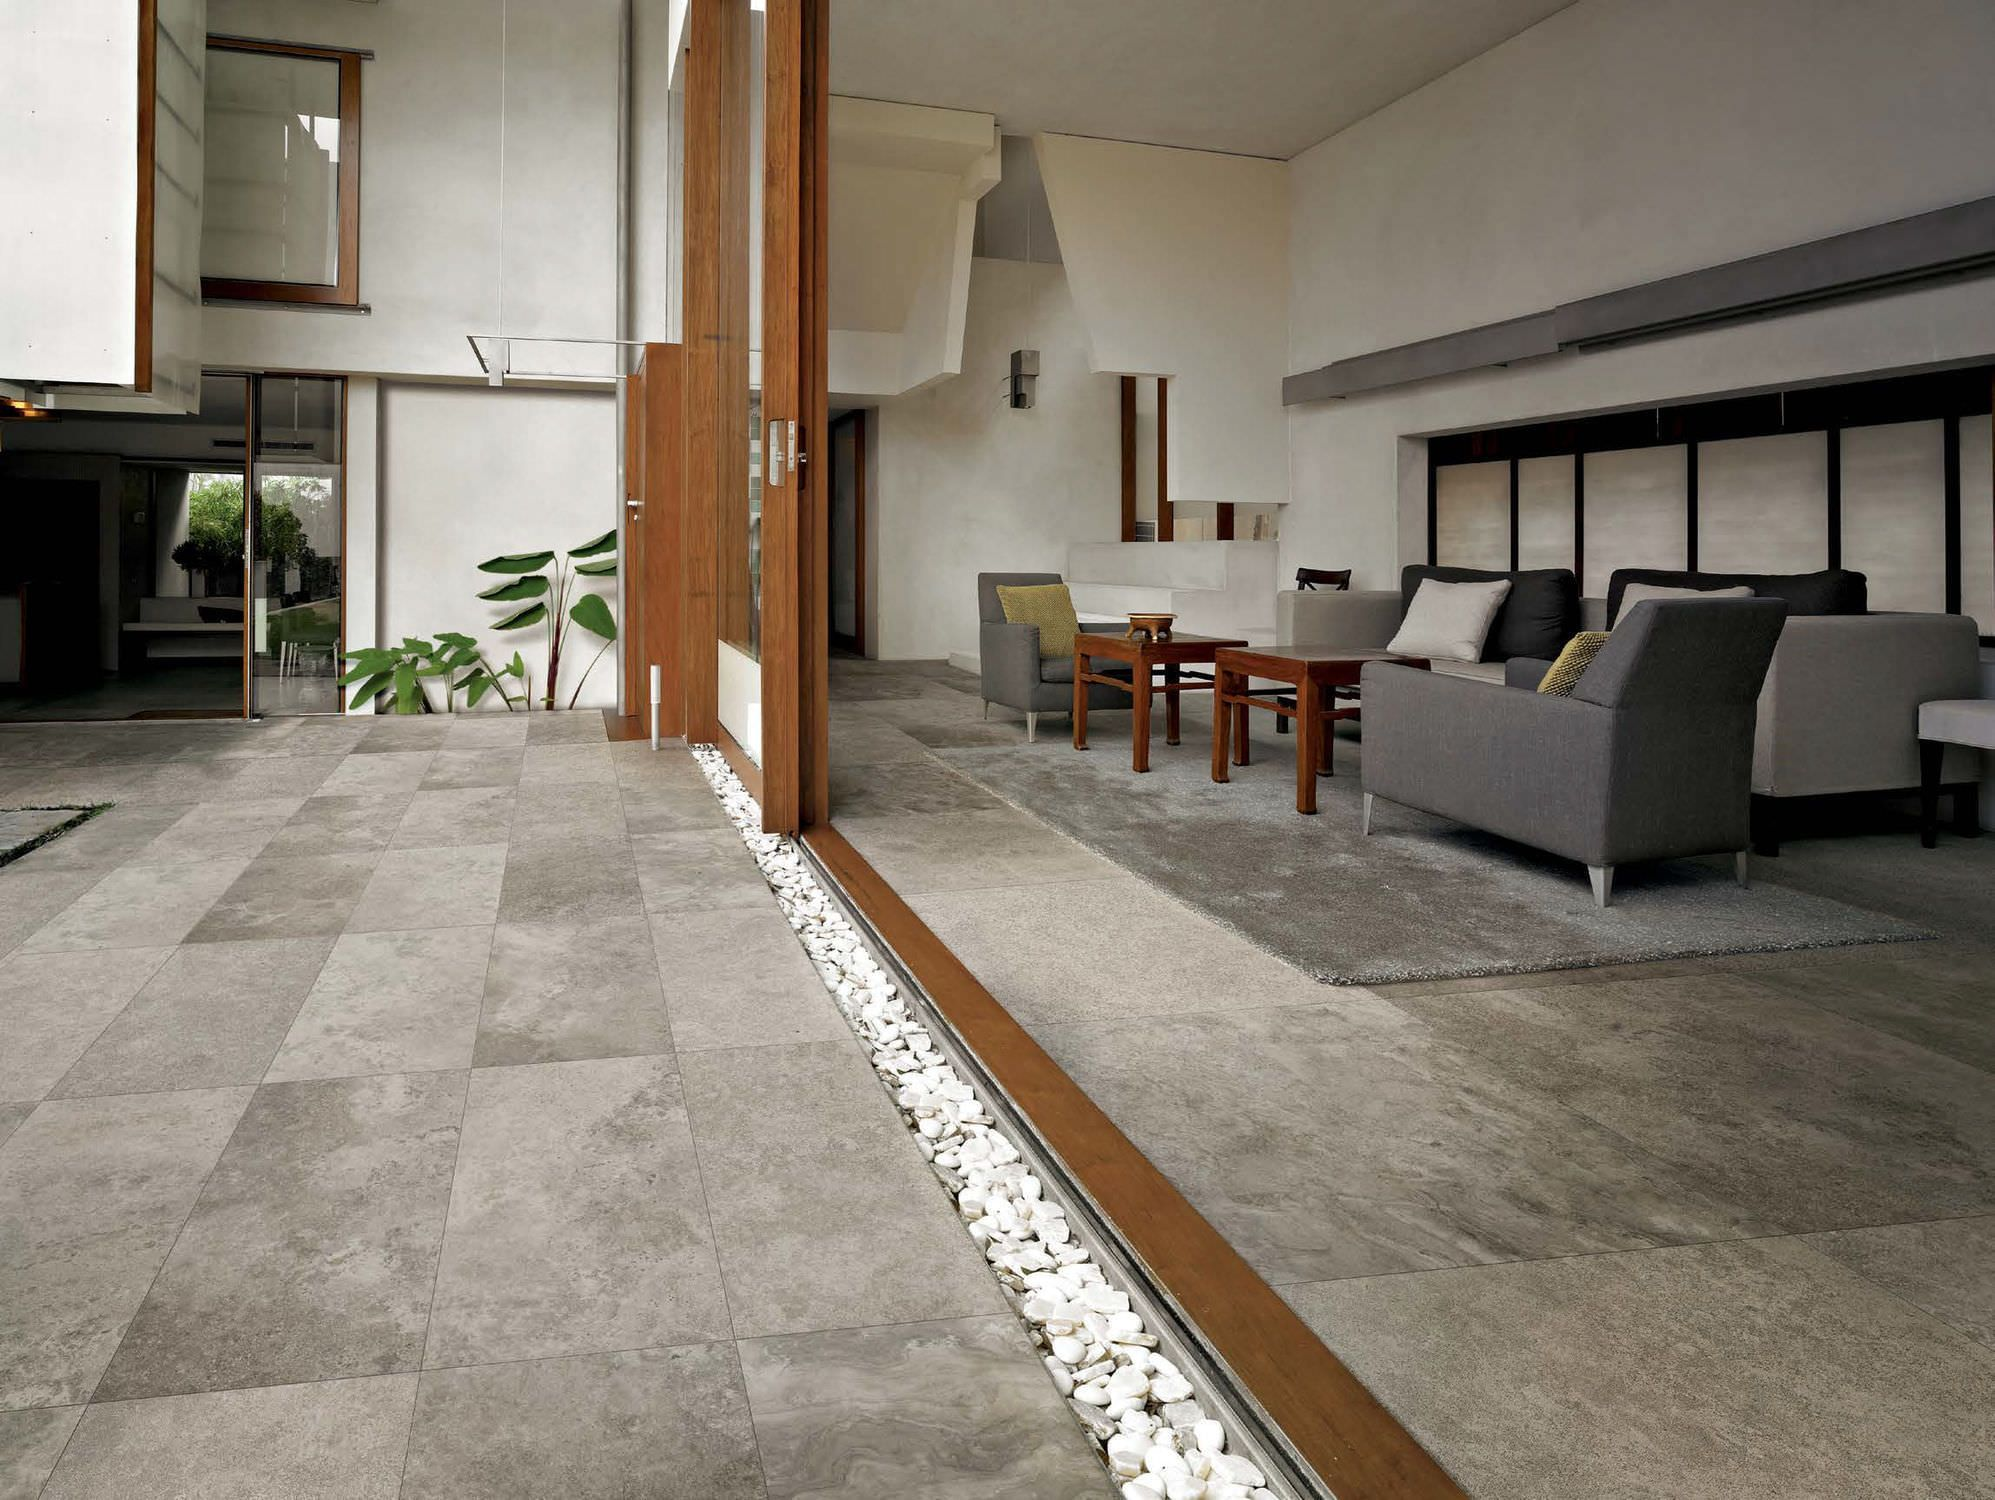 Indoor outdoor tile flooring flooring ideas and inspiration stunning indoor outdoor tile photos amazing house decorating dailygadgetfo Images